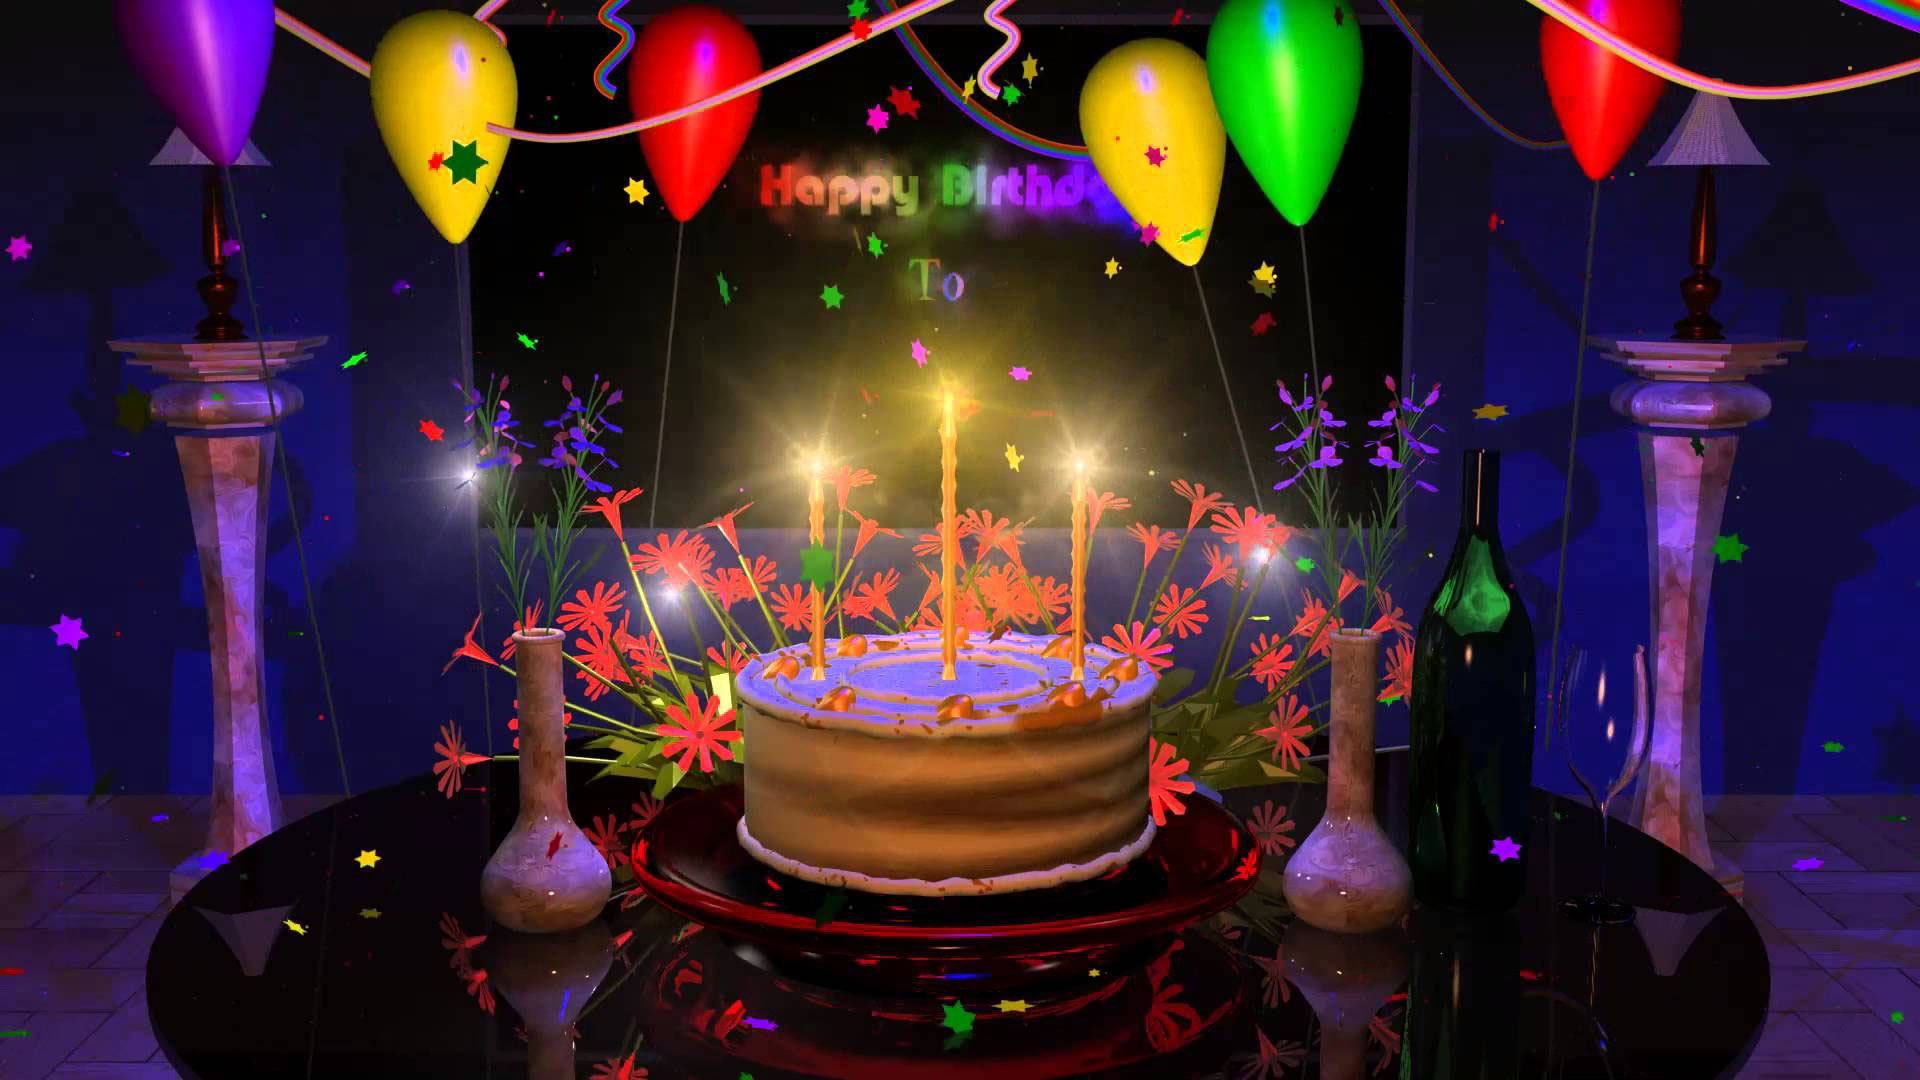 birthday background wallpaper hd ; hd-pics-photos-attractive-happy-birthday-to-you-cake-candles-balloons-decorations-hd-quality-desktop-background-wallpaper